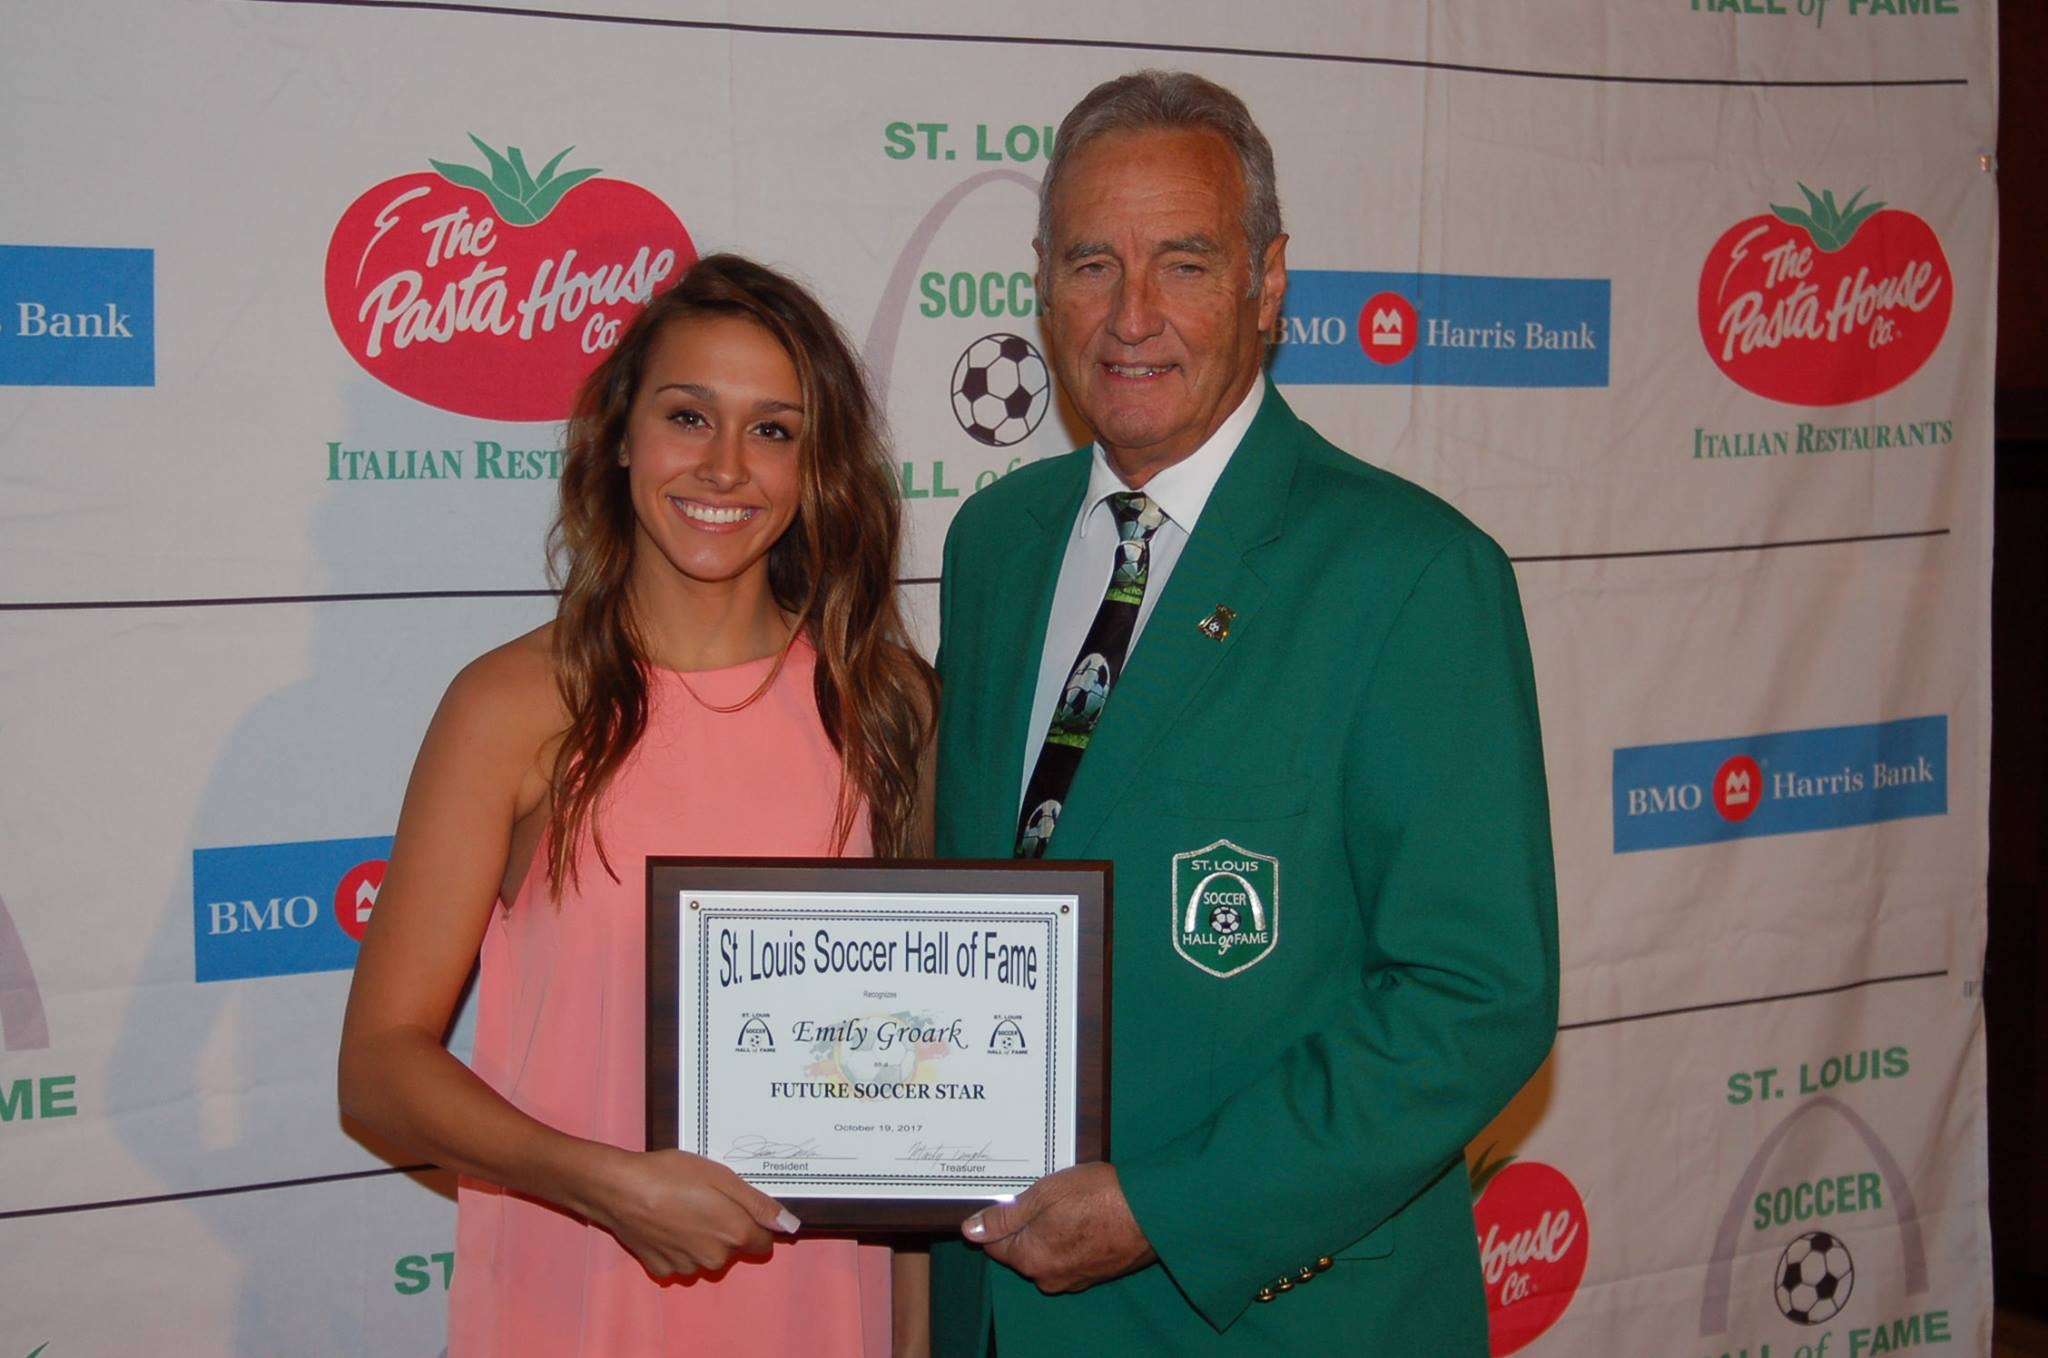 SLSG's Emily Groark Honored at STL Soccer Hall of Fame